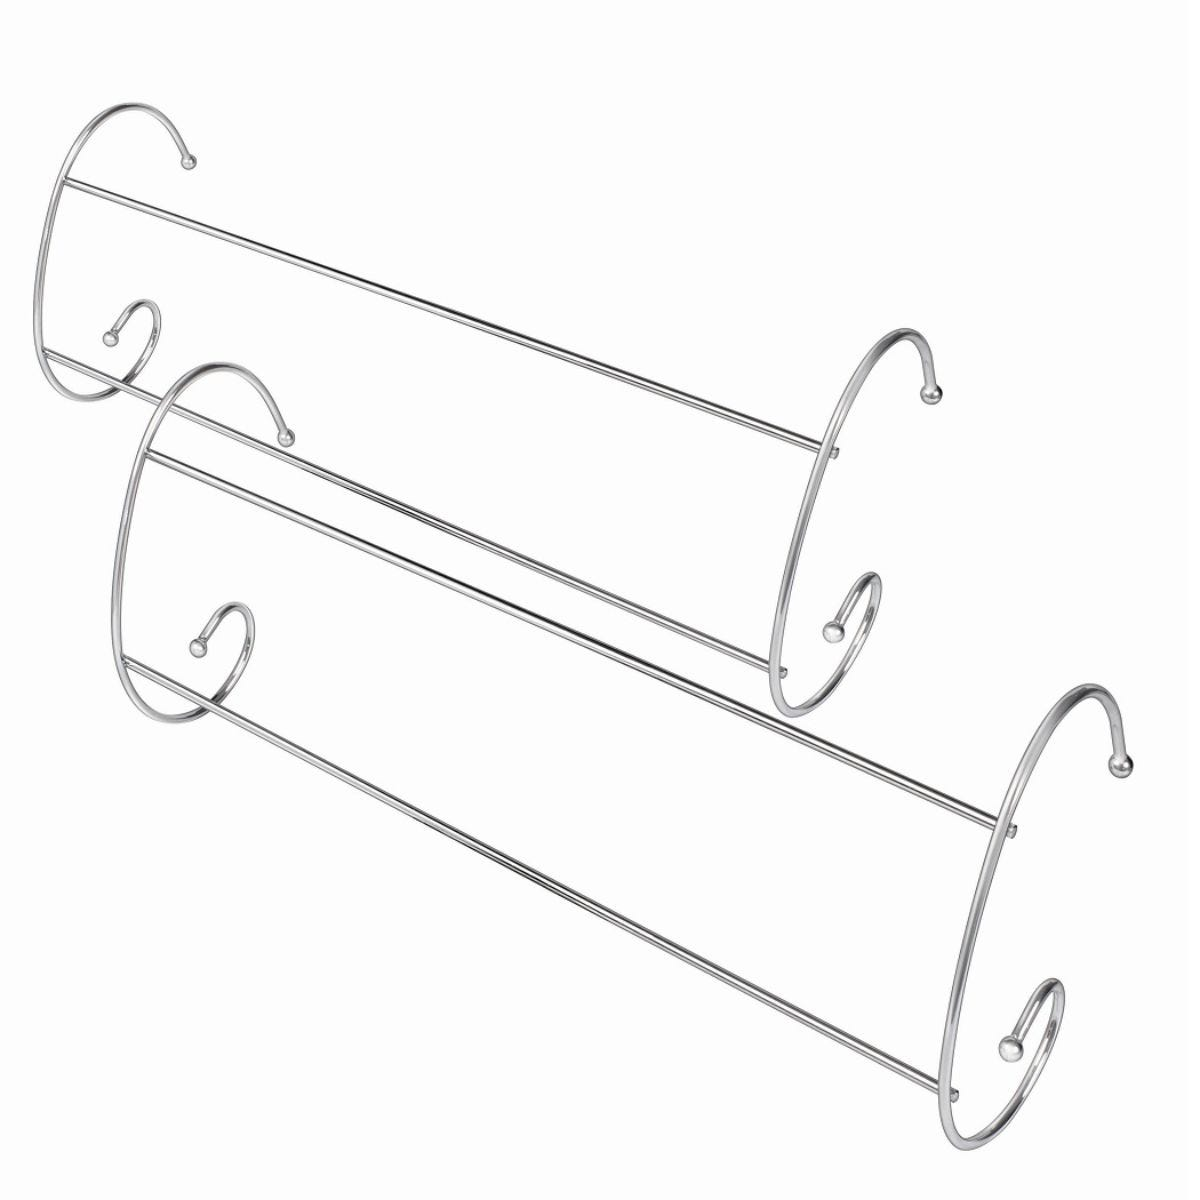 Addis 2-Bar Chrome Radiator Airer - 2 Pack